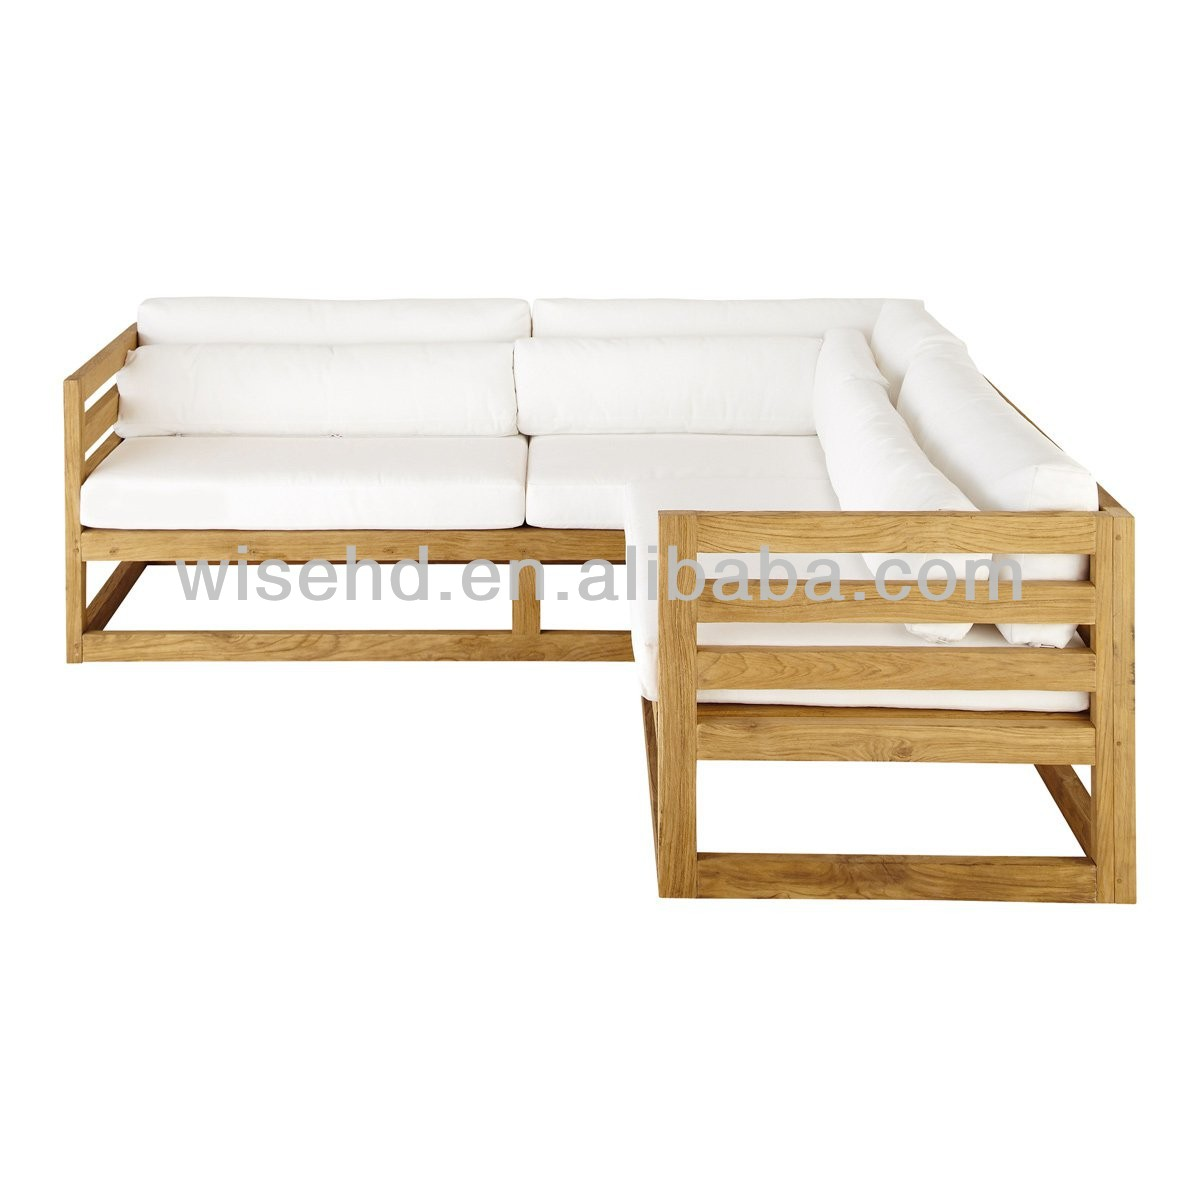 wb0065 Solid Pine Wood Corner Sofa Buy Corner SofaSolid Wood